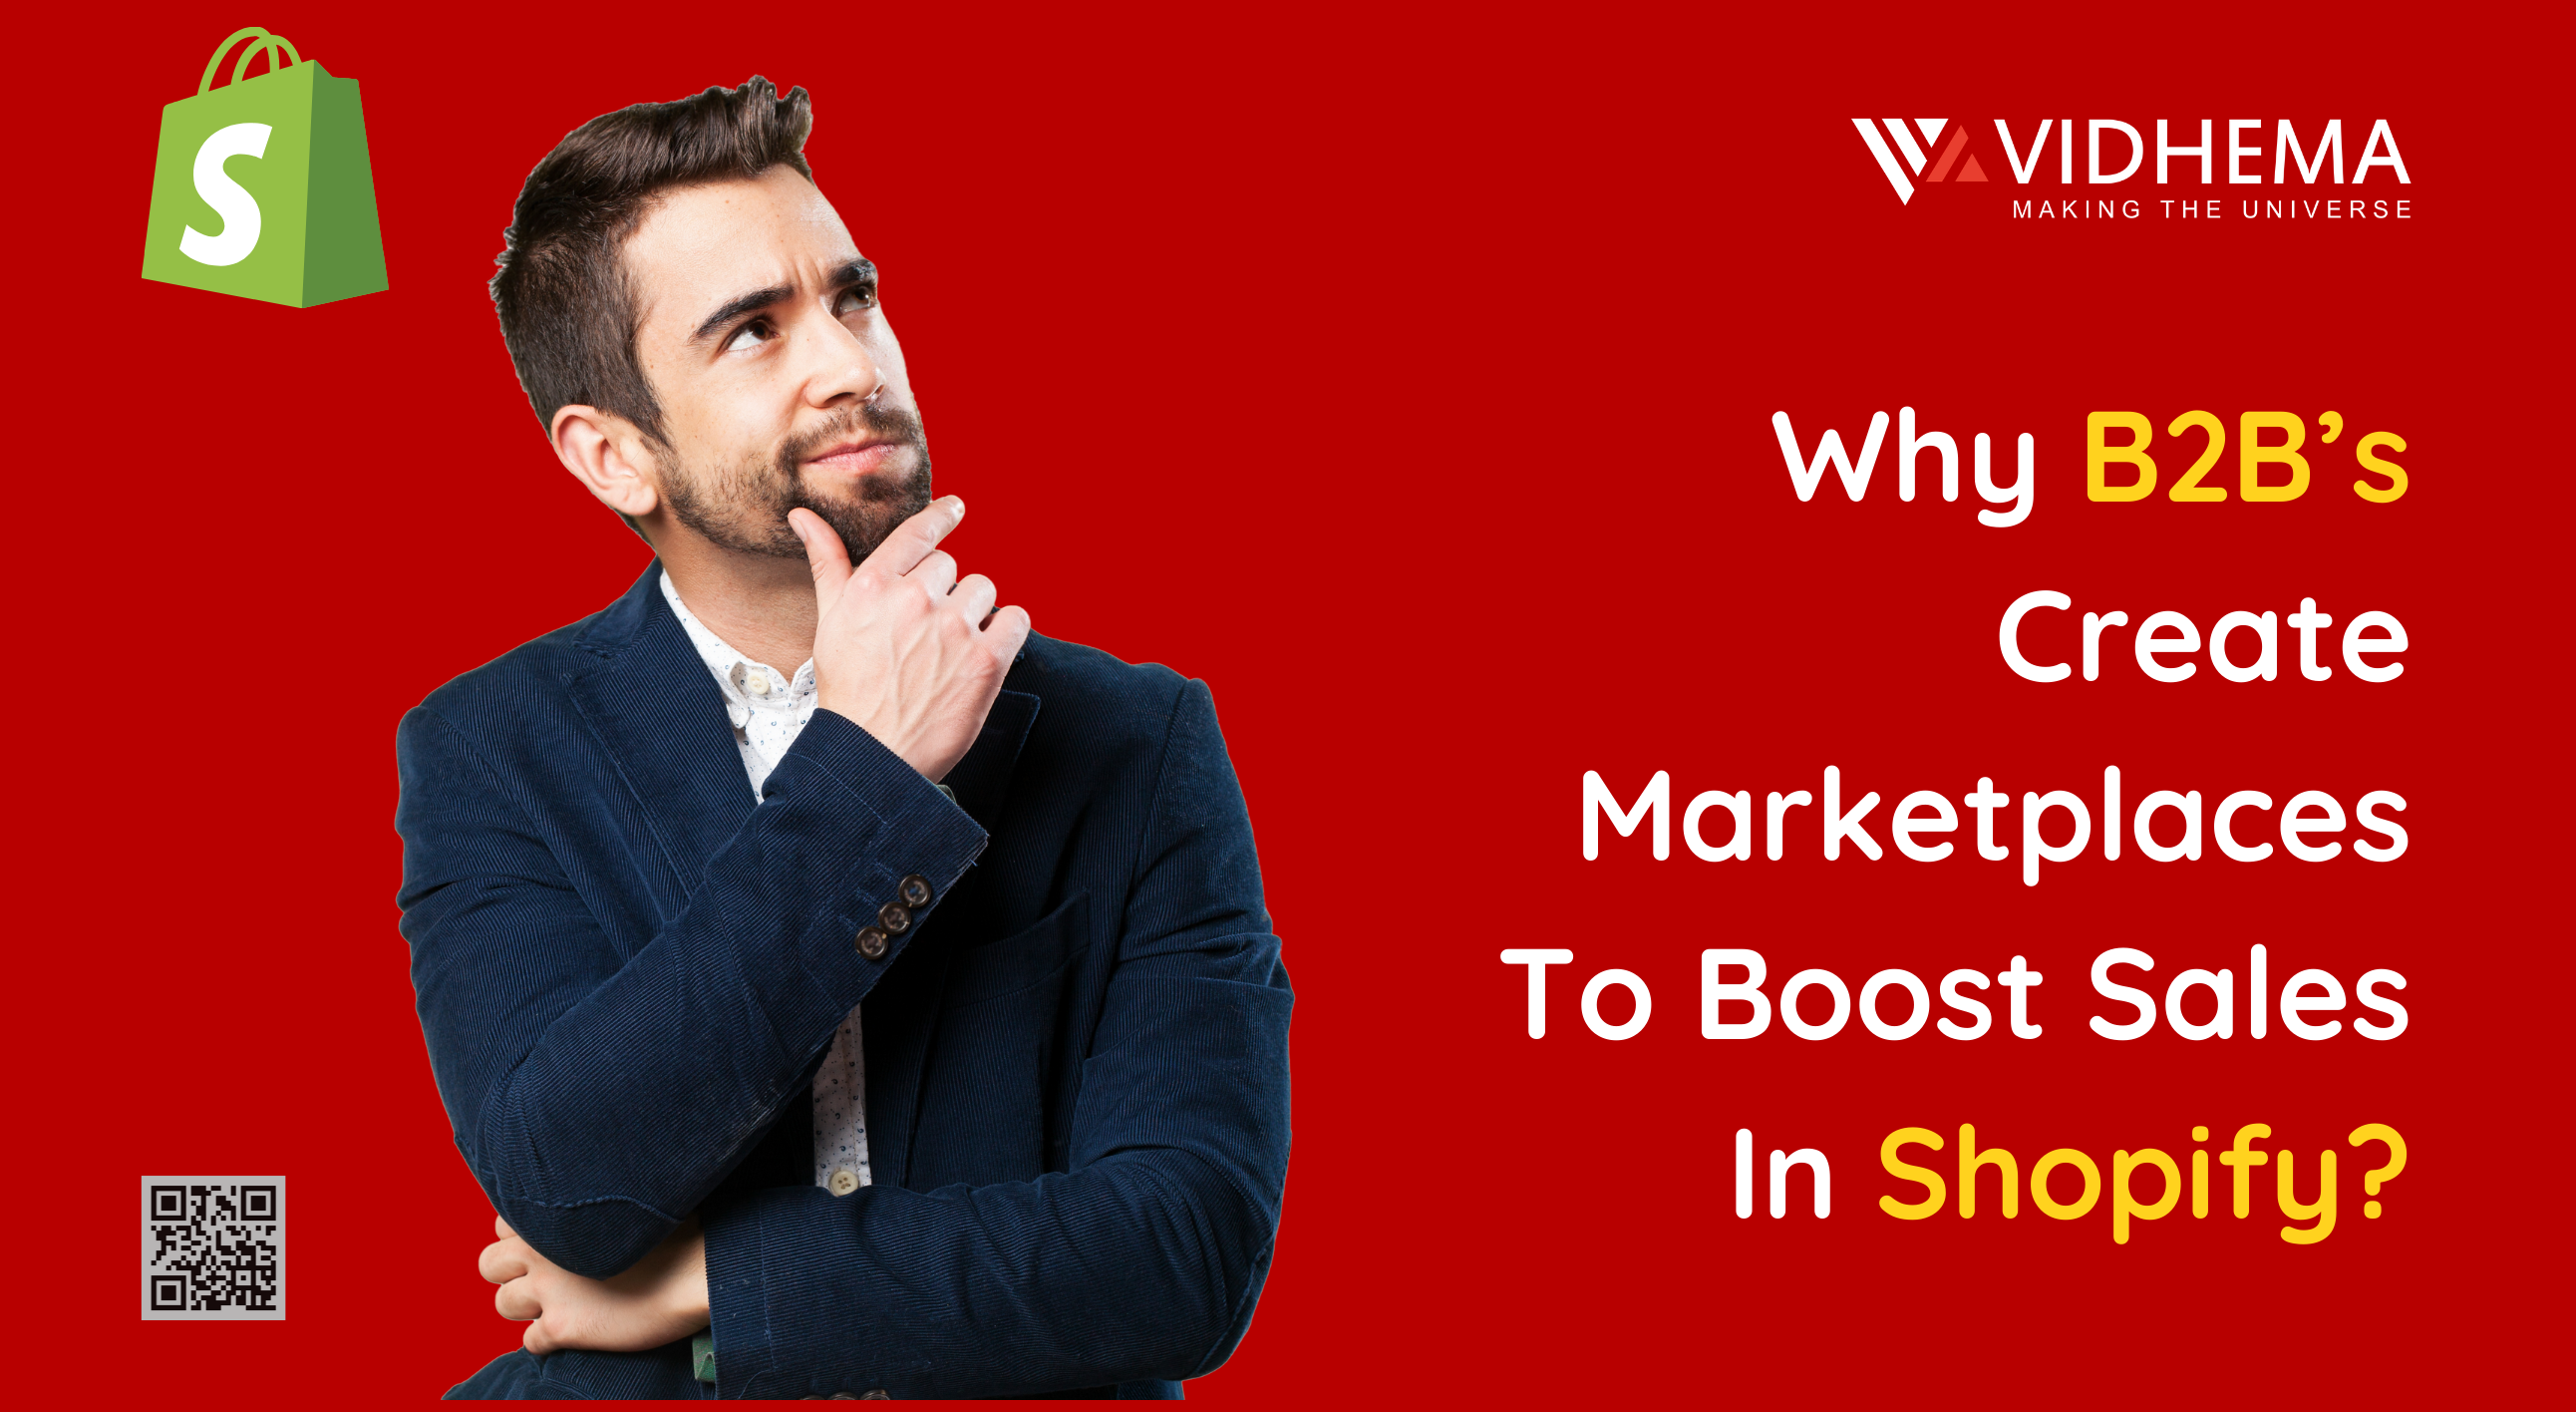 Why B2B's create marketplaces to boost sales in Shopify?